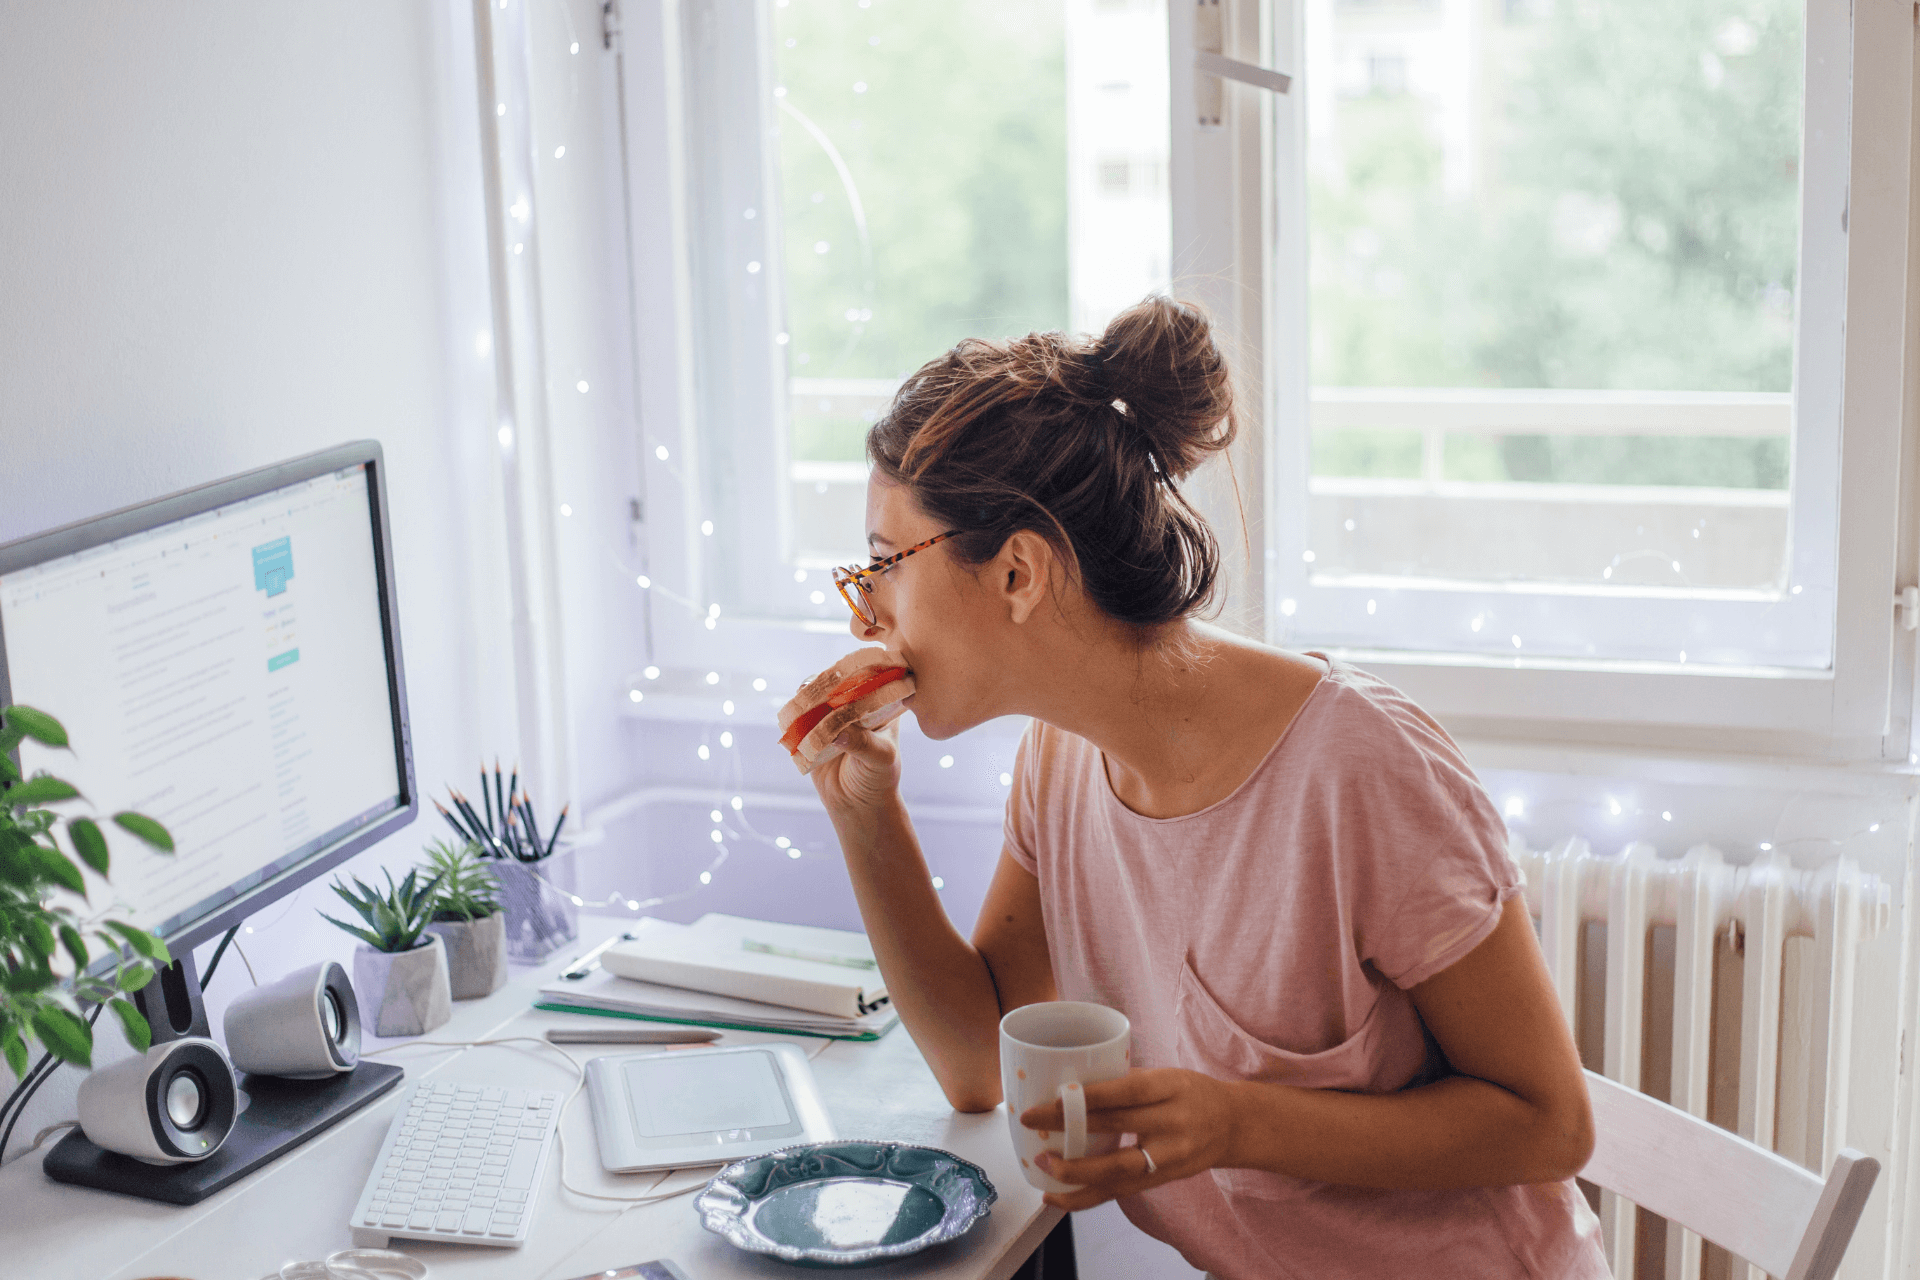 A woman works from home while eating